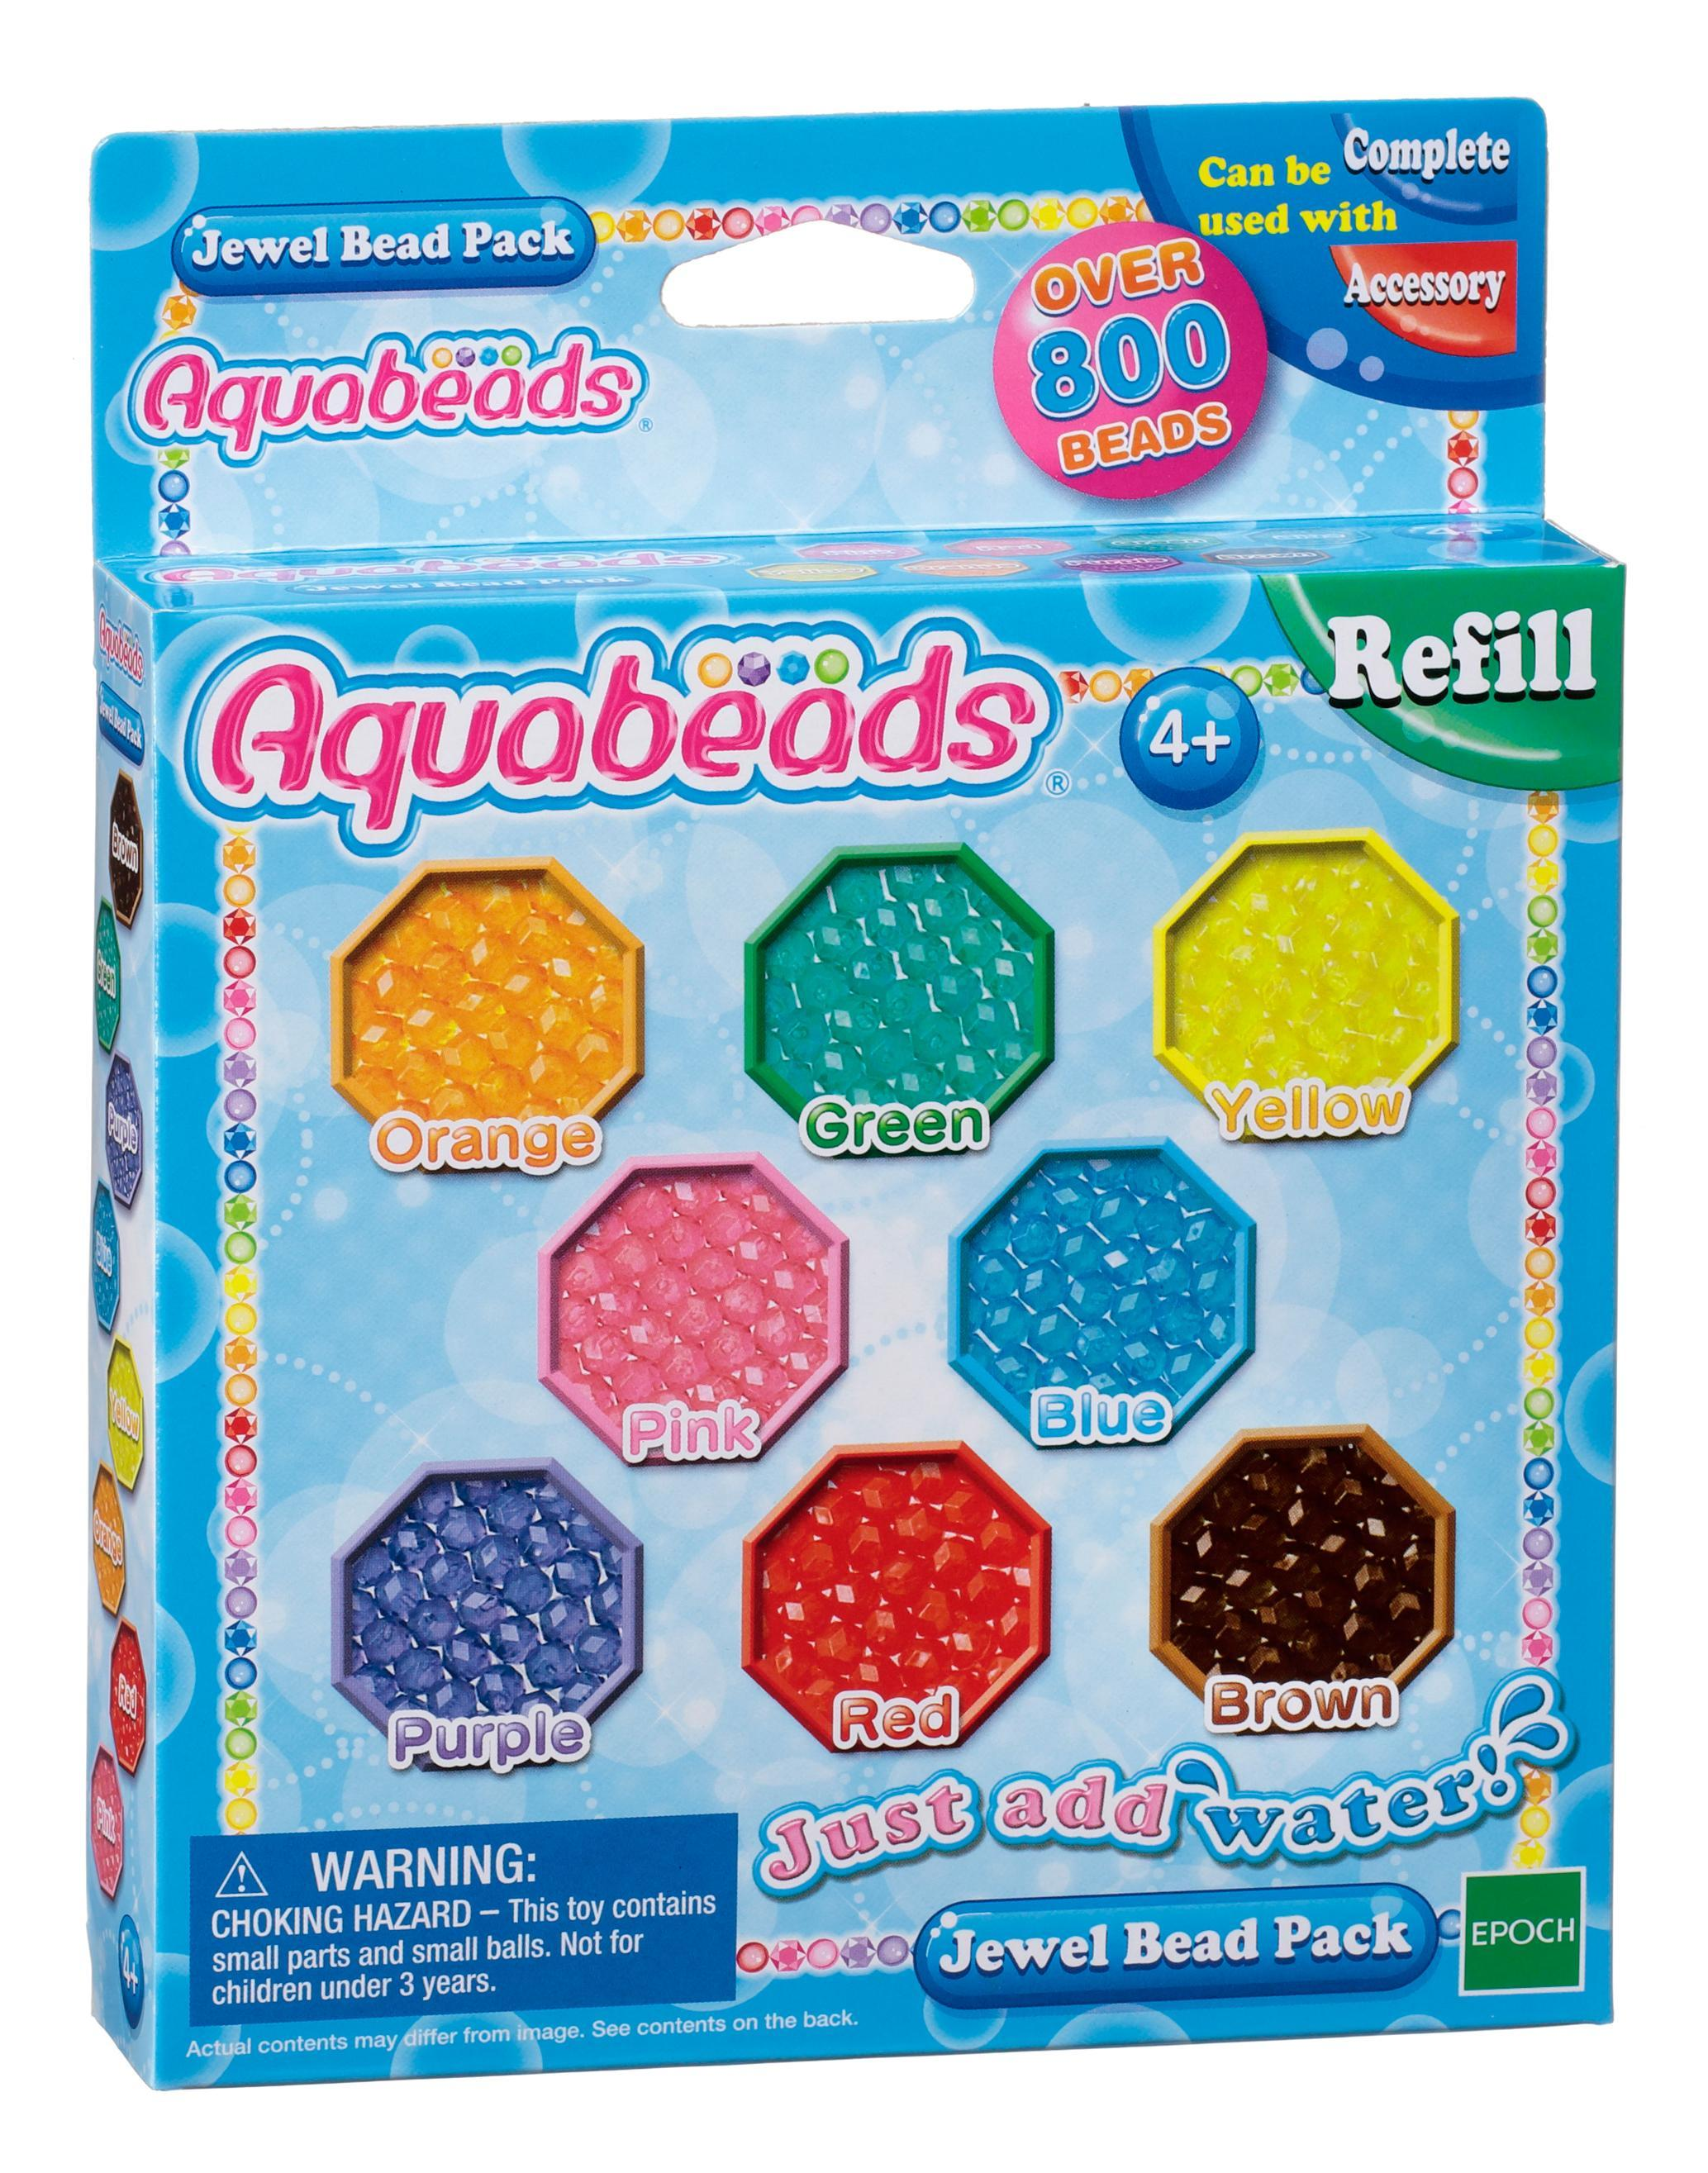 Aquabeads refill jewel bead pack (79178)